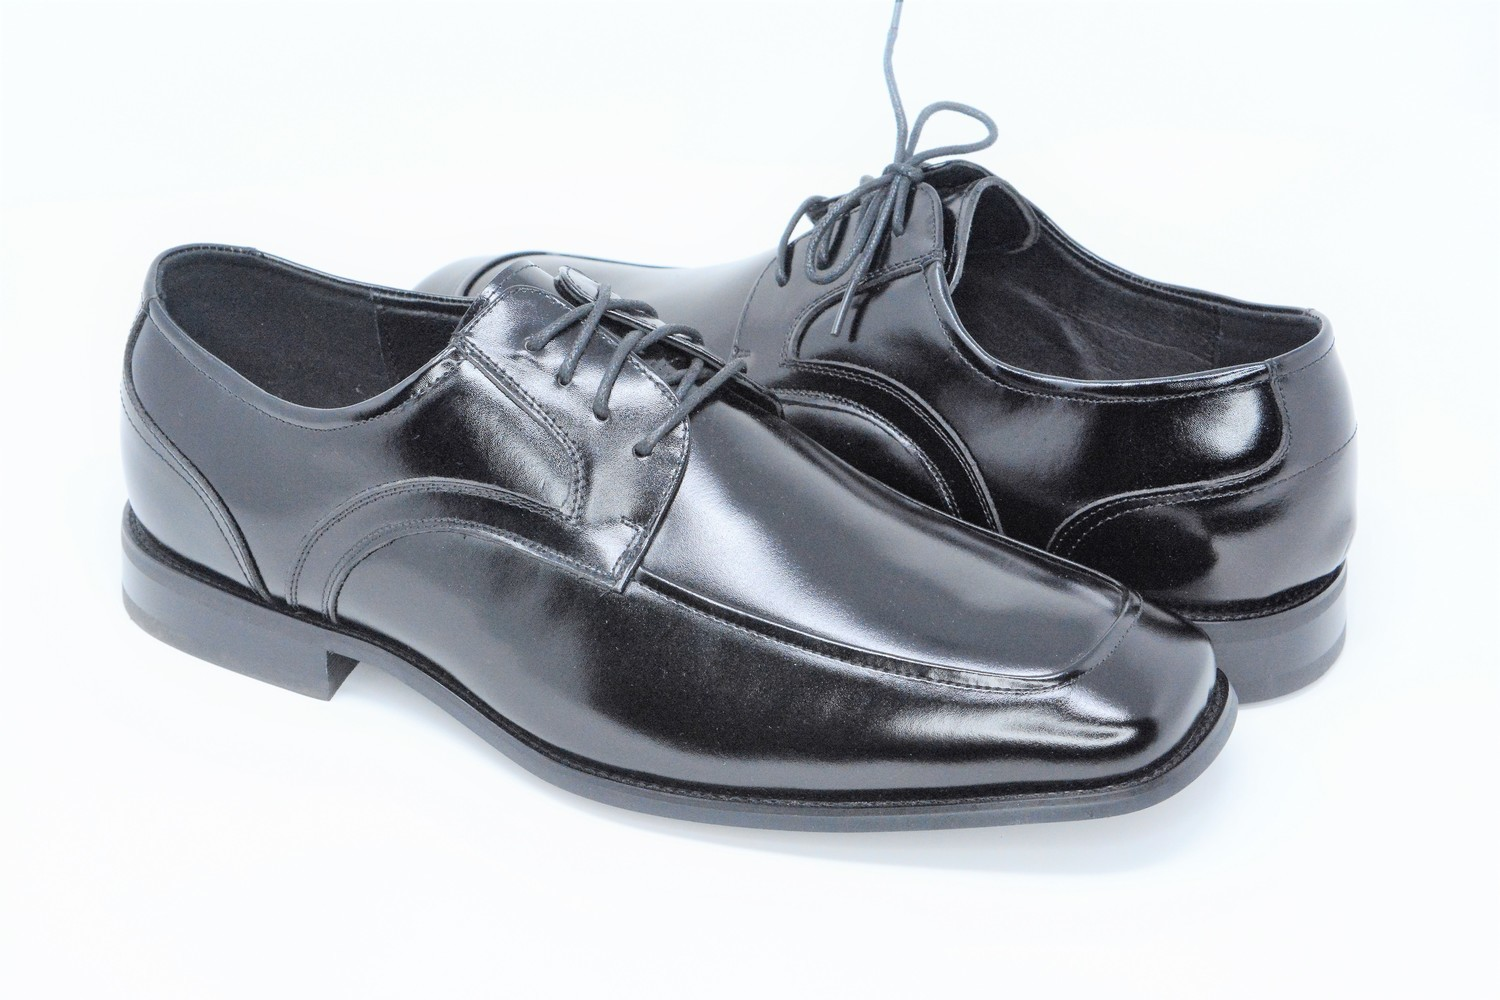 Shoes - Black Box Toe Lace Up Strap Stacy